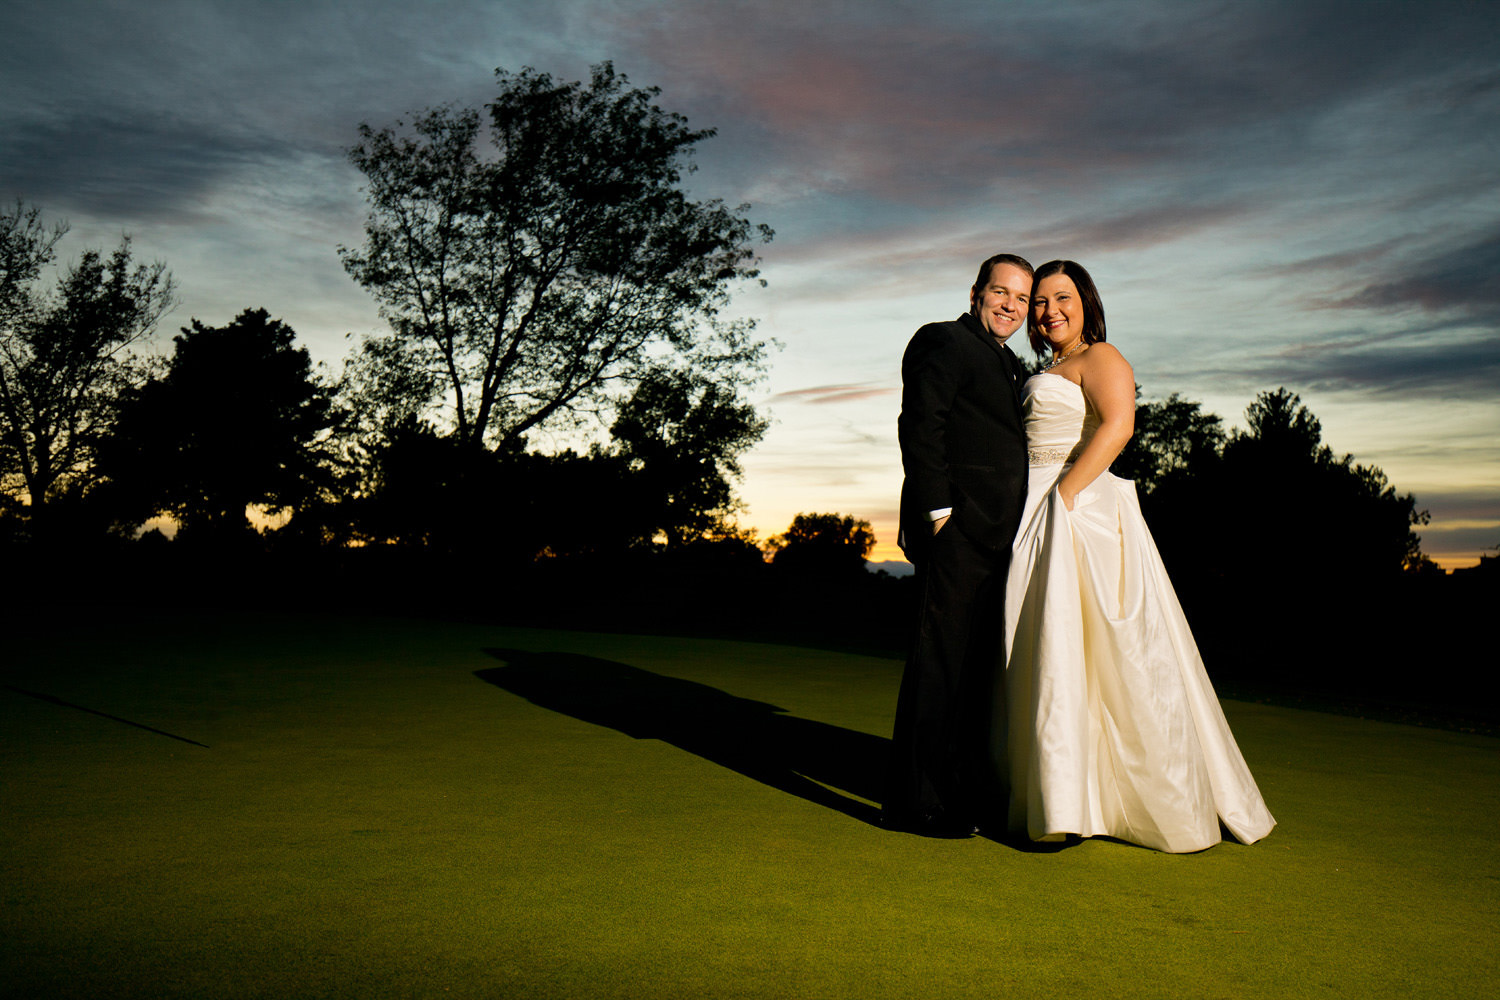 centennial-valley-country-club-wedding-tomKphoto-017.jpg